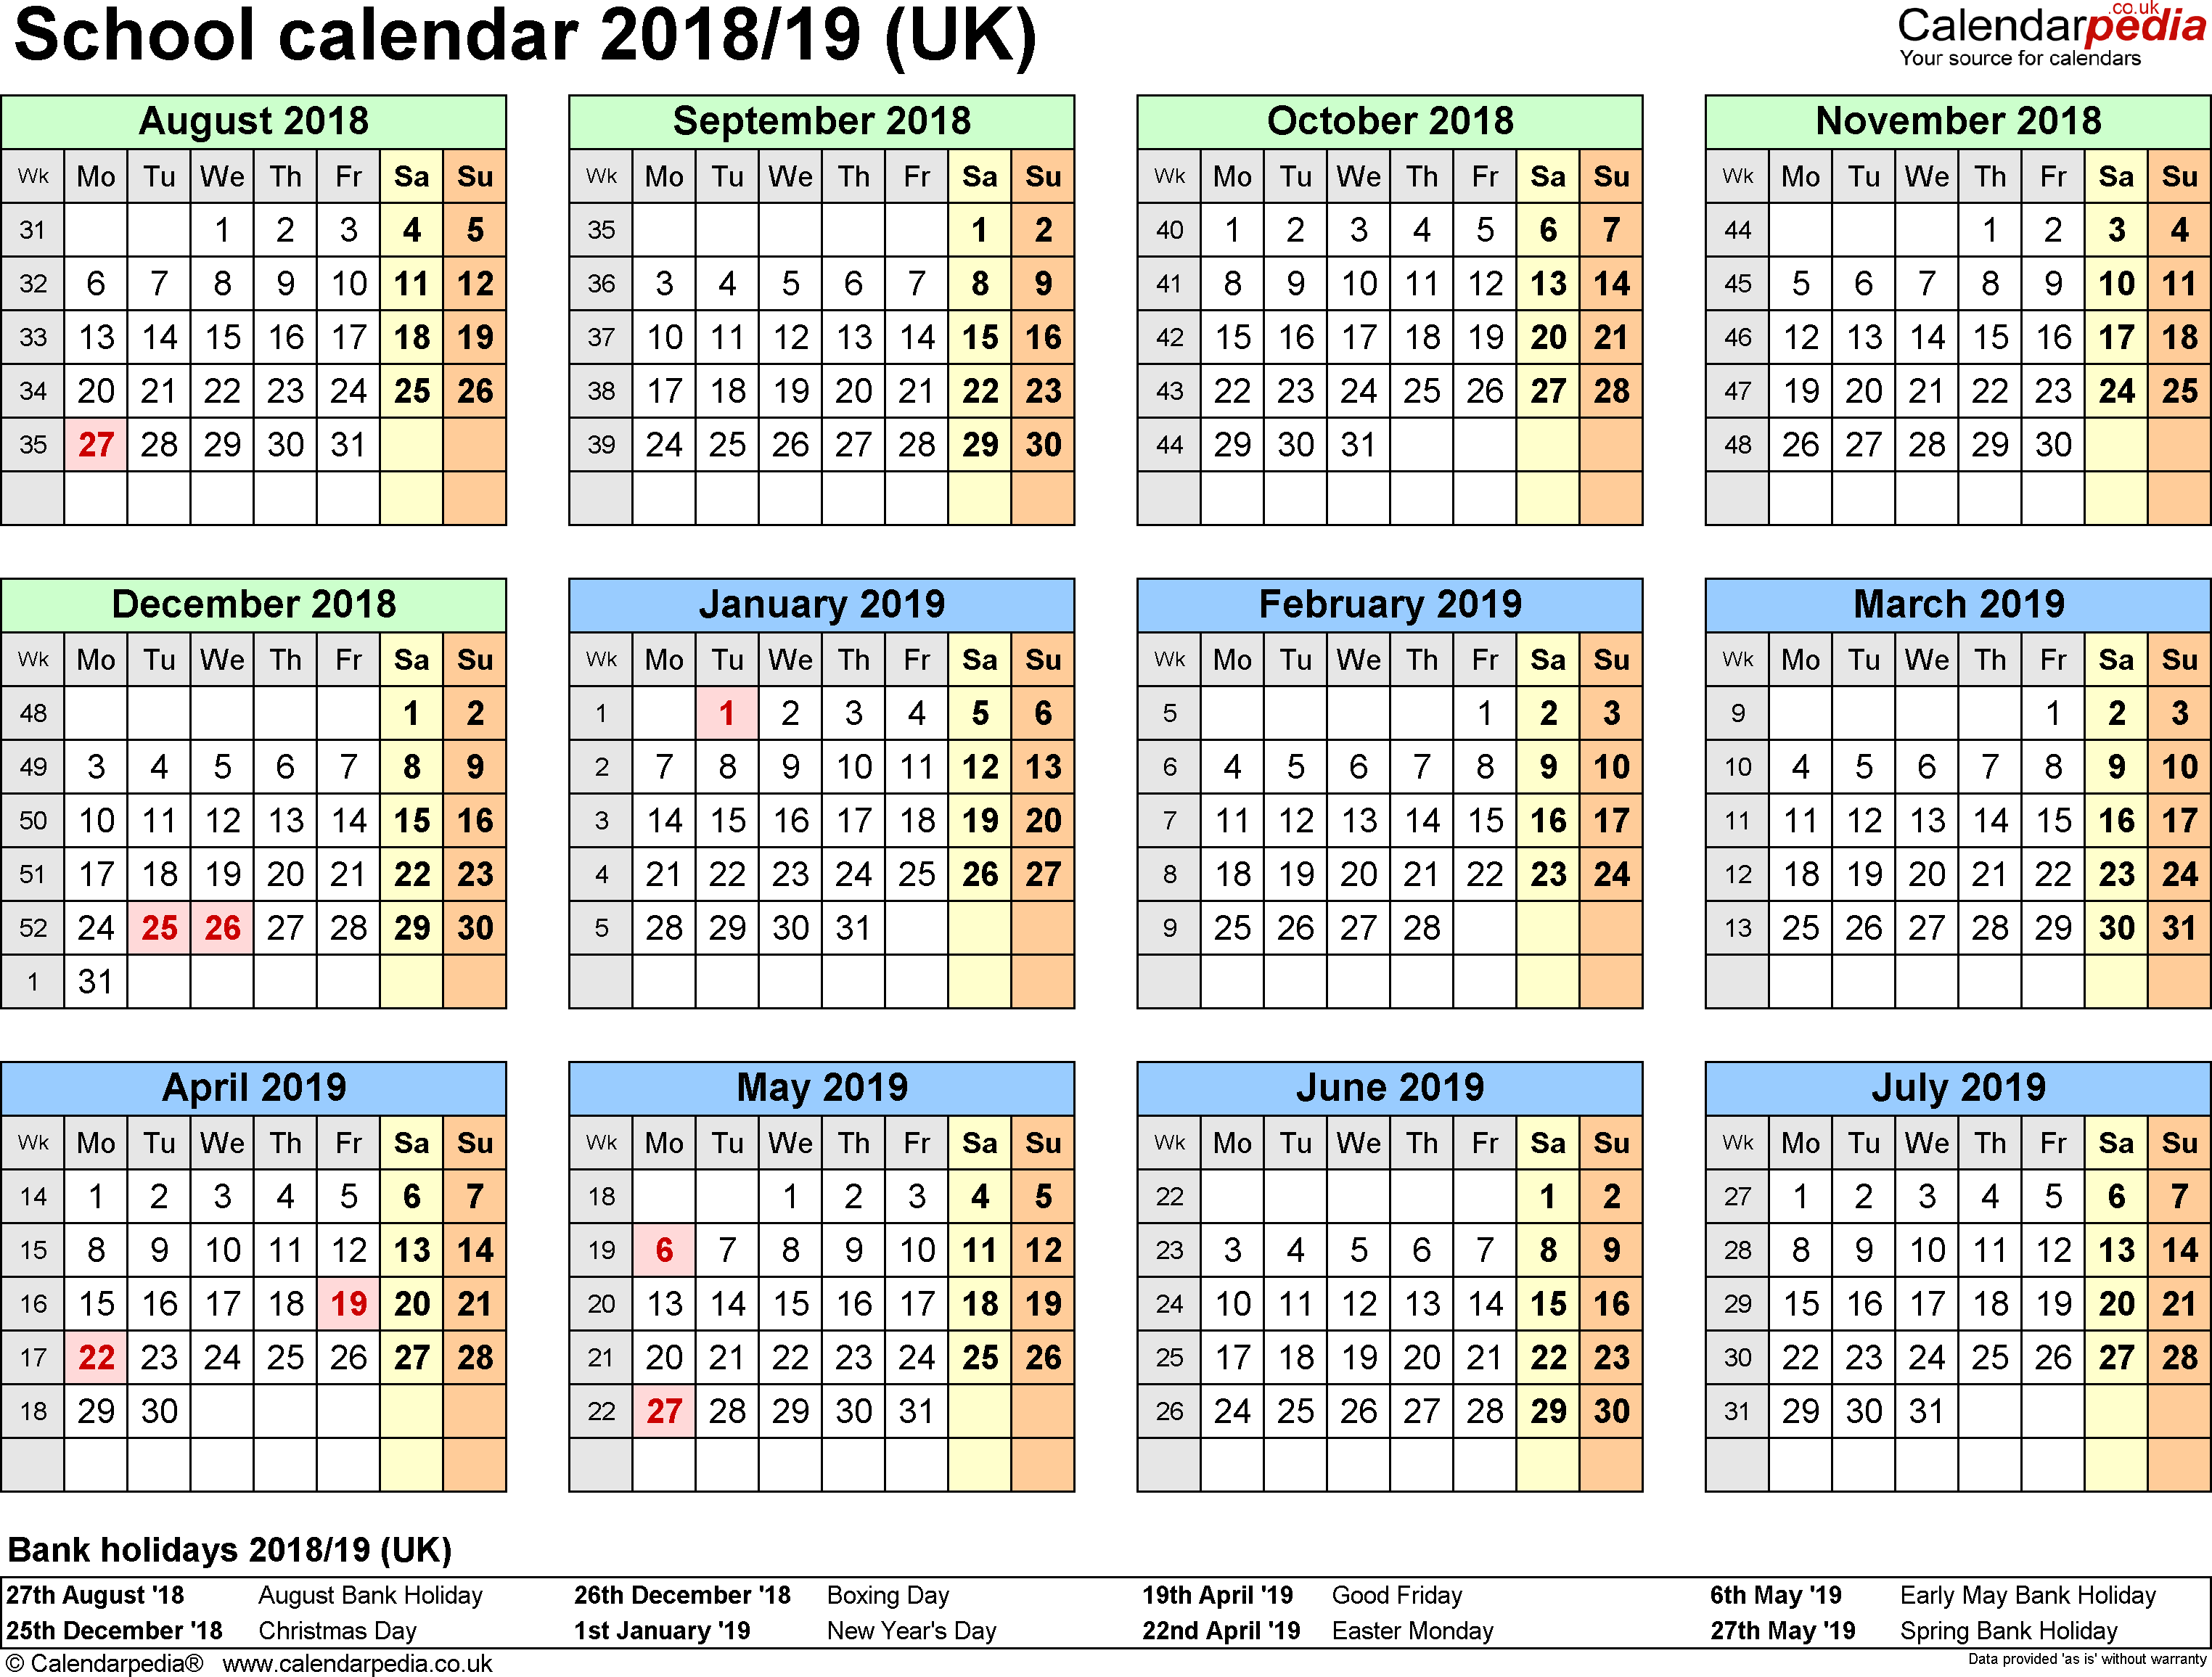 Template 1: School year calendars 2018/19 as Excel template, landscape orientation, A4, 1 page, months horizontally, days vertically, with UK bank holidays and week numbers